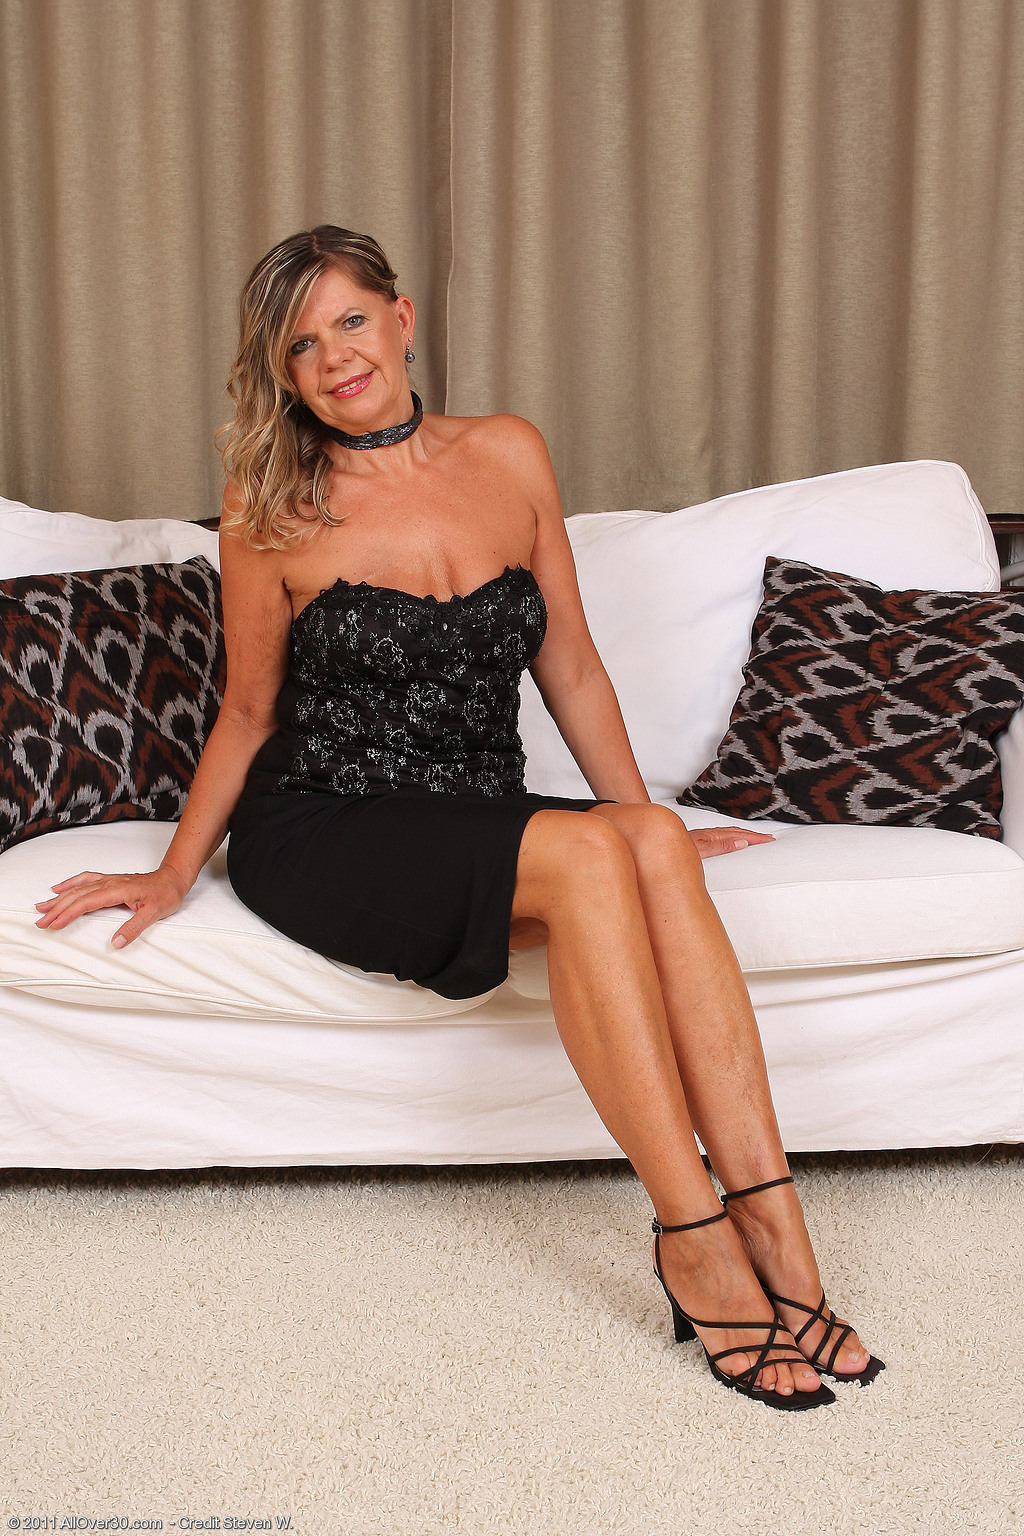 56 year old samantha p - exclusive milf pictures from allover30